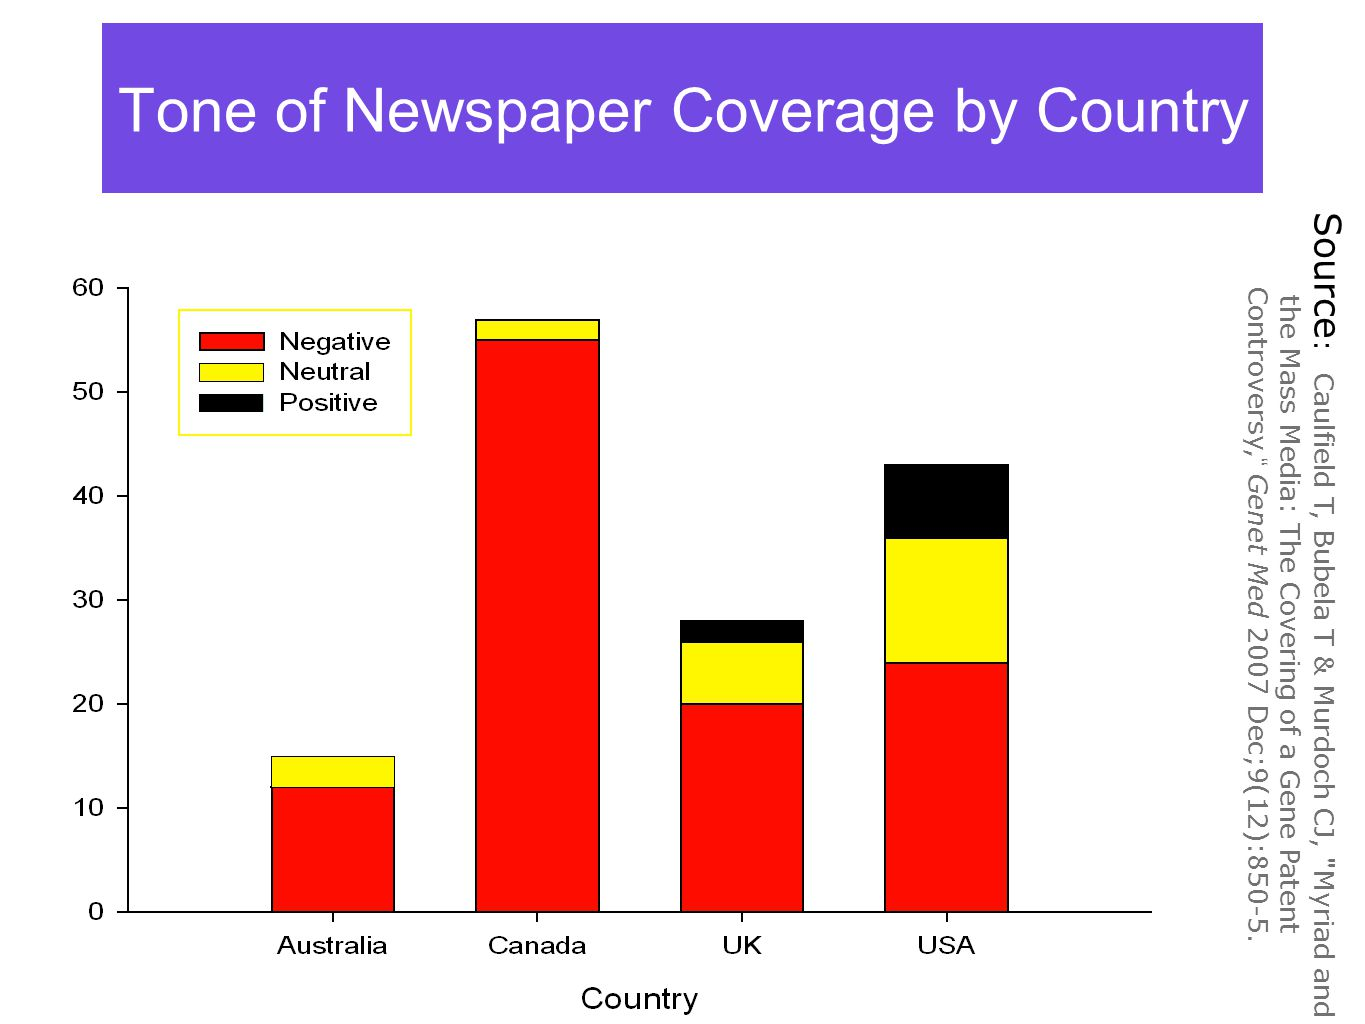 Tone of Newspaper Coverage by Country Source : Caulfield T, Bubela T & Murdoch CJ, Myriad and the Mass Media: The Covering of a Gene Patent Controversy, Genet Med 2007 Dec;9(12):850-5.